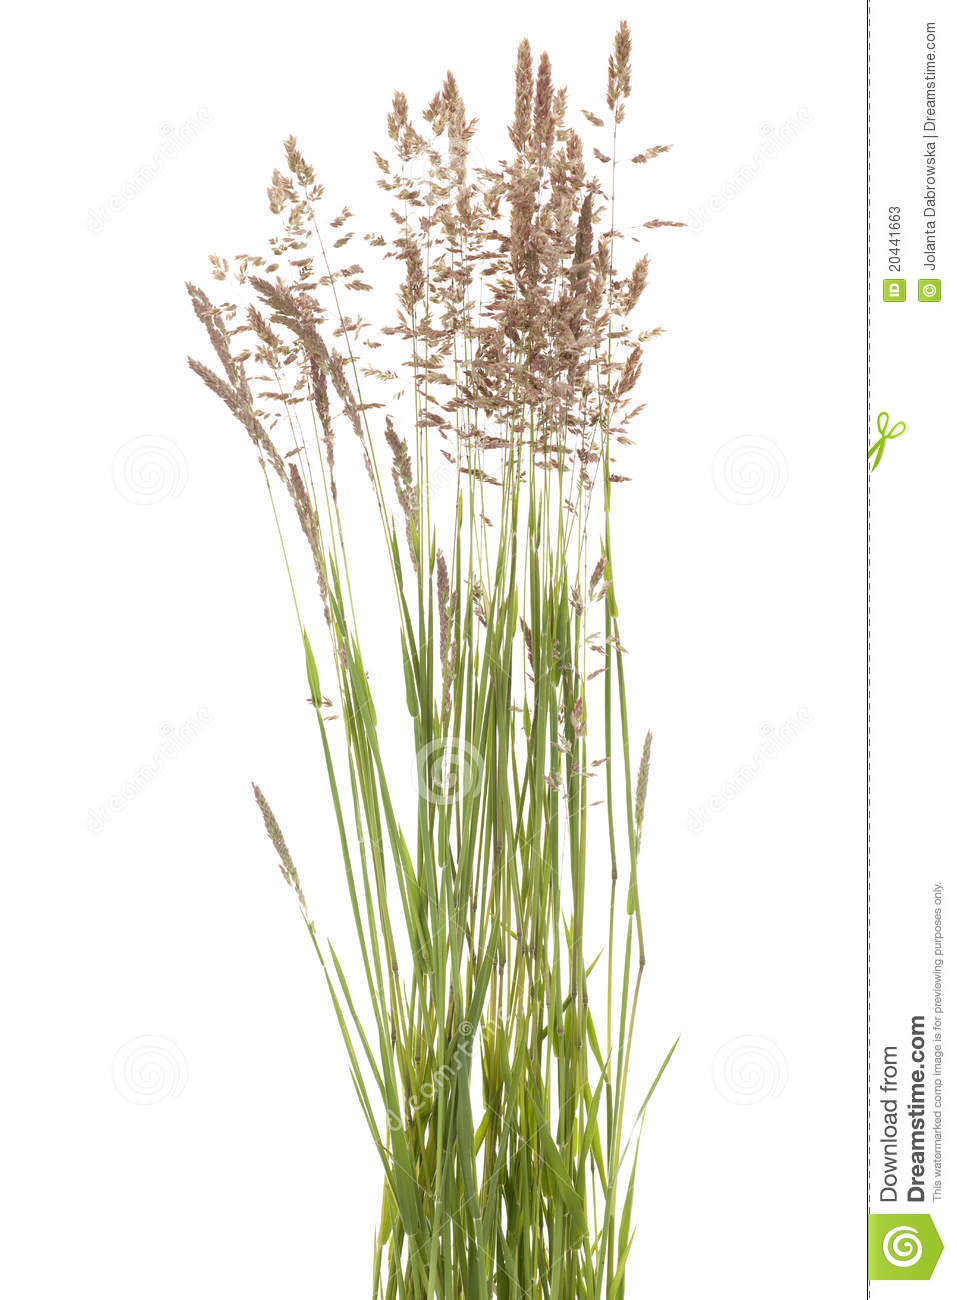 Poa Pratensis Stock Photos.